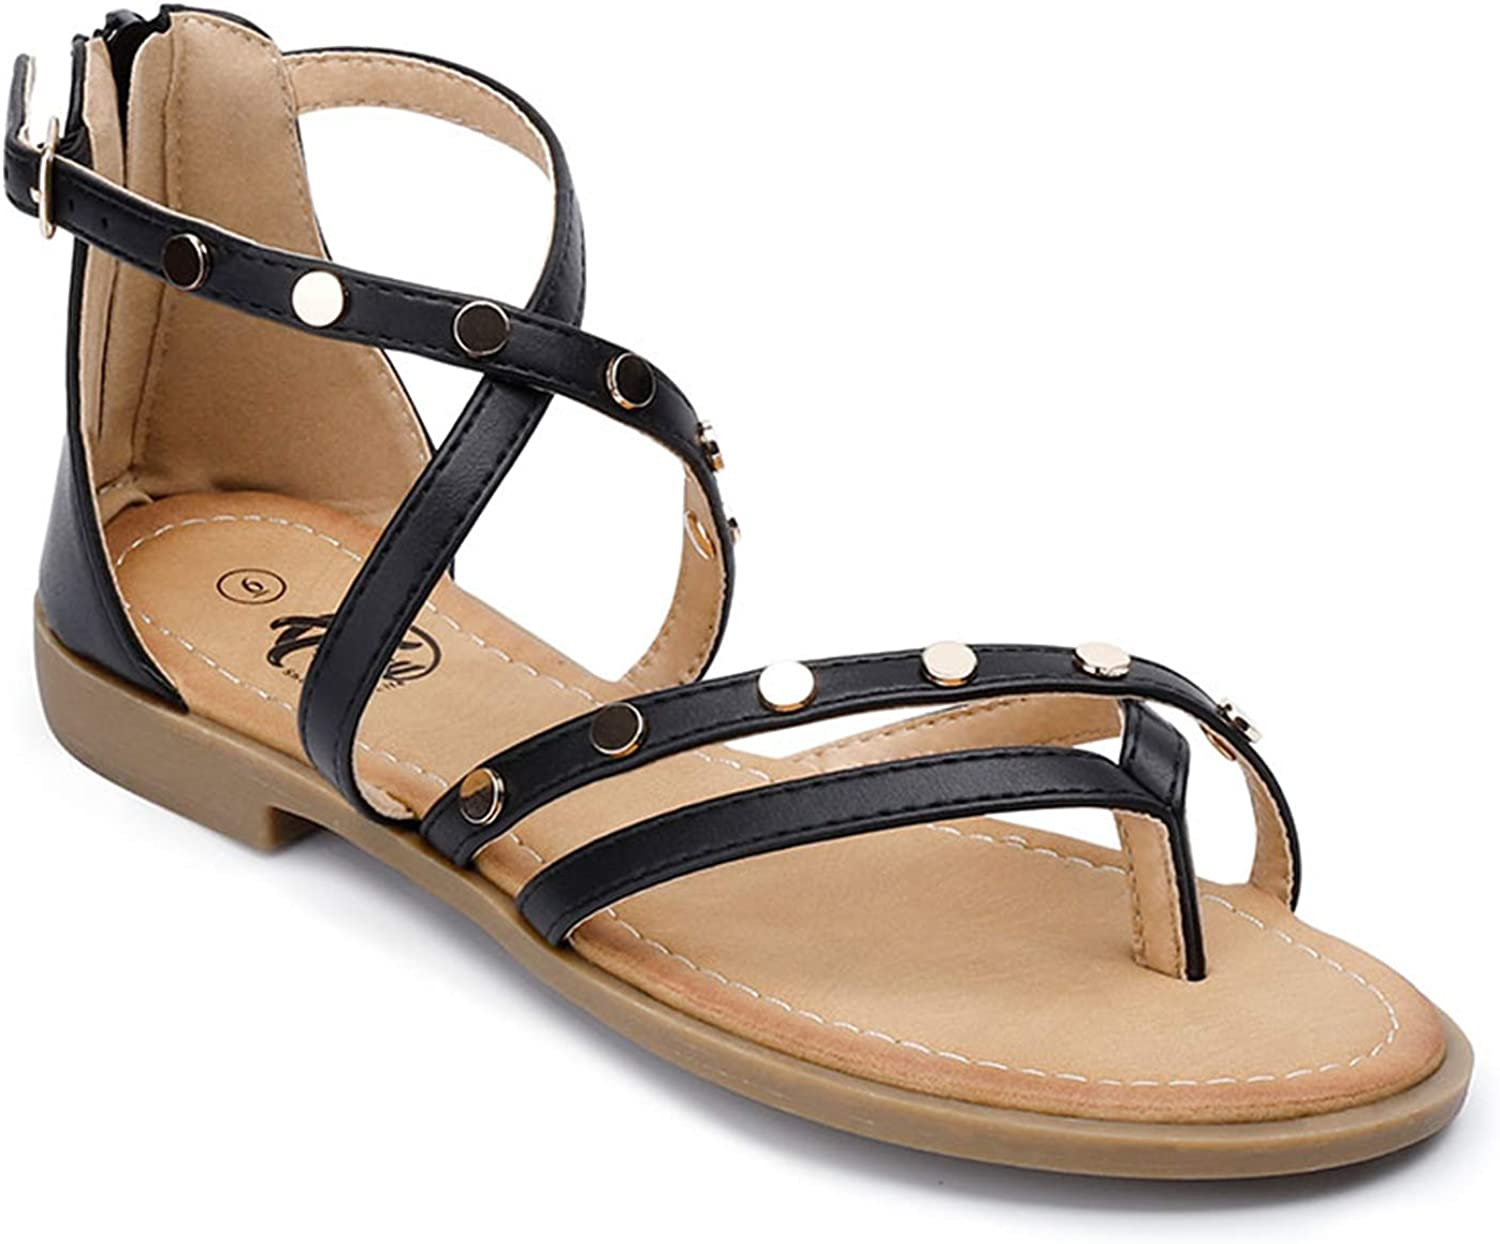 Trary Women's Flat Sandals Round Rivets